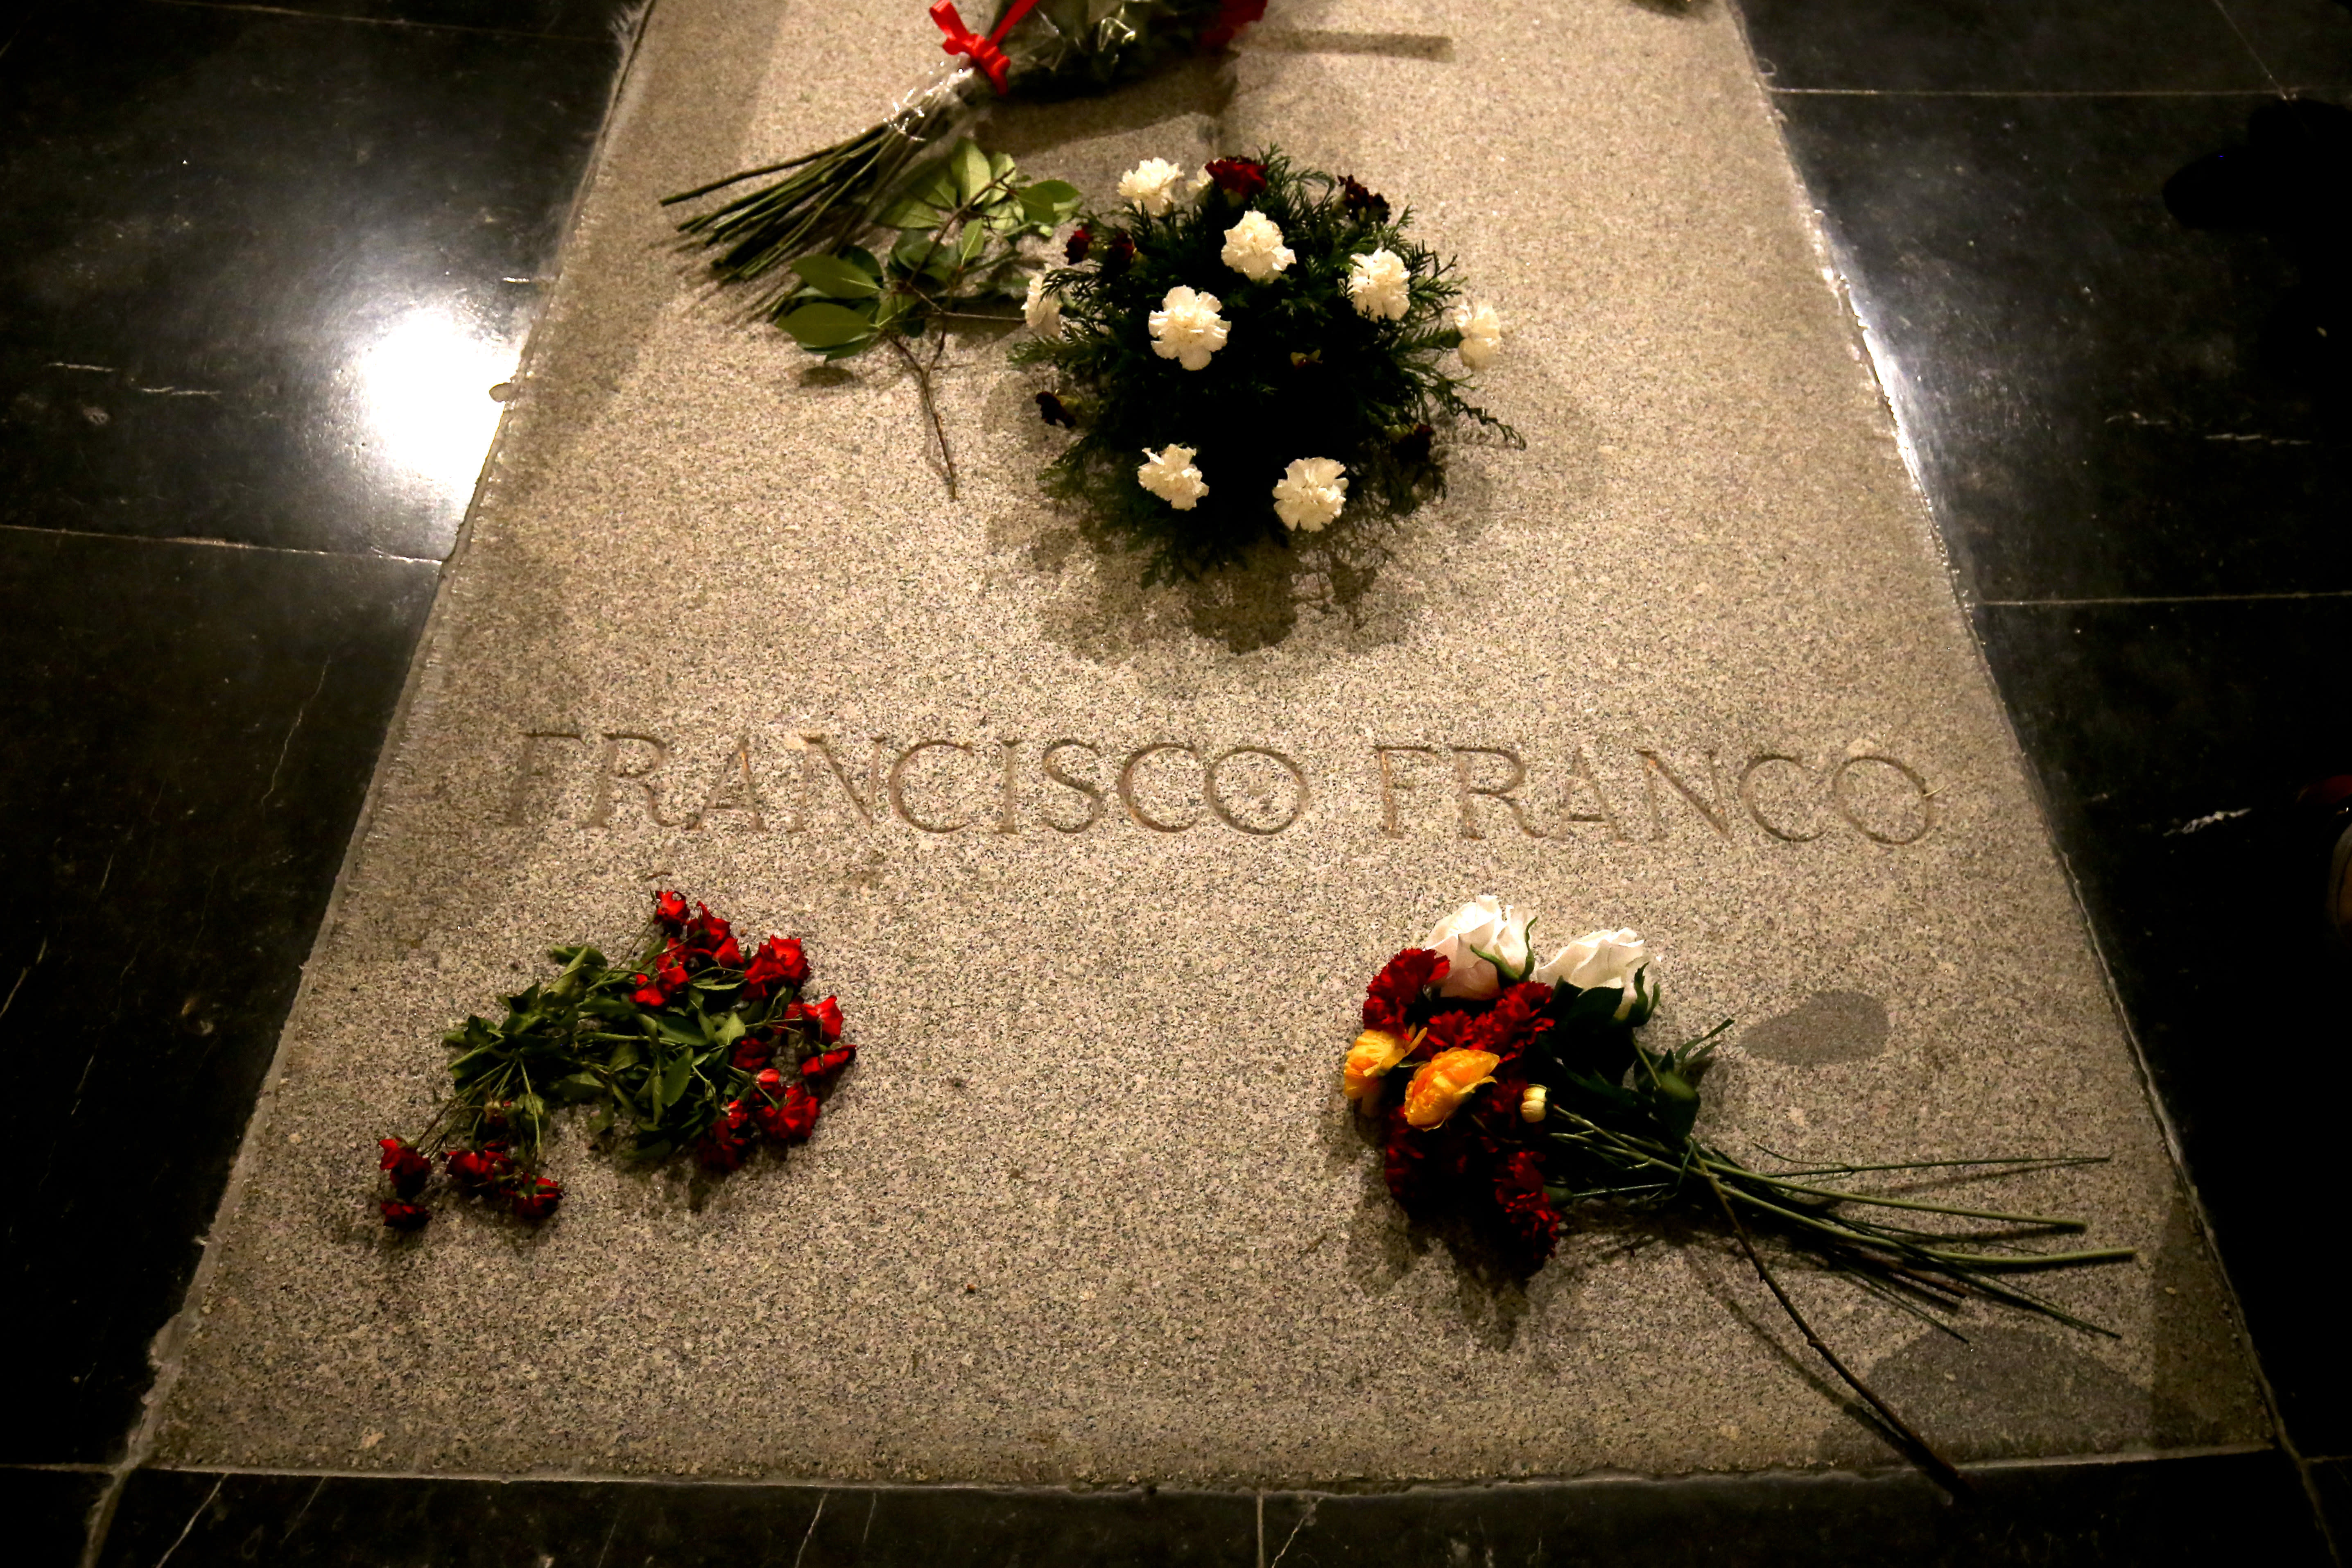 Franco's family to take charge of Spanish dictator's remains